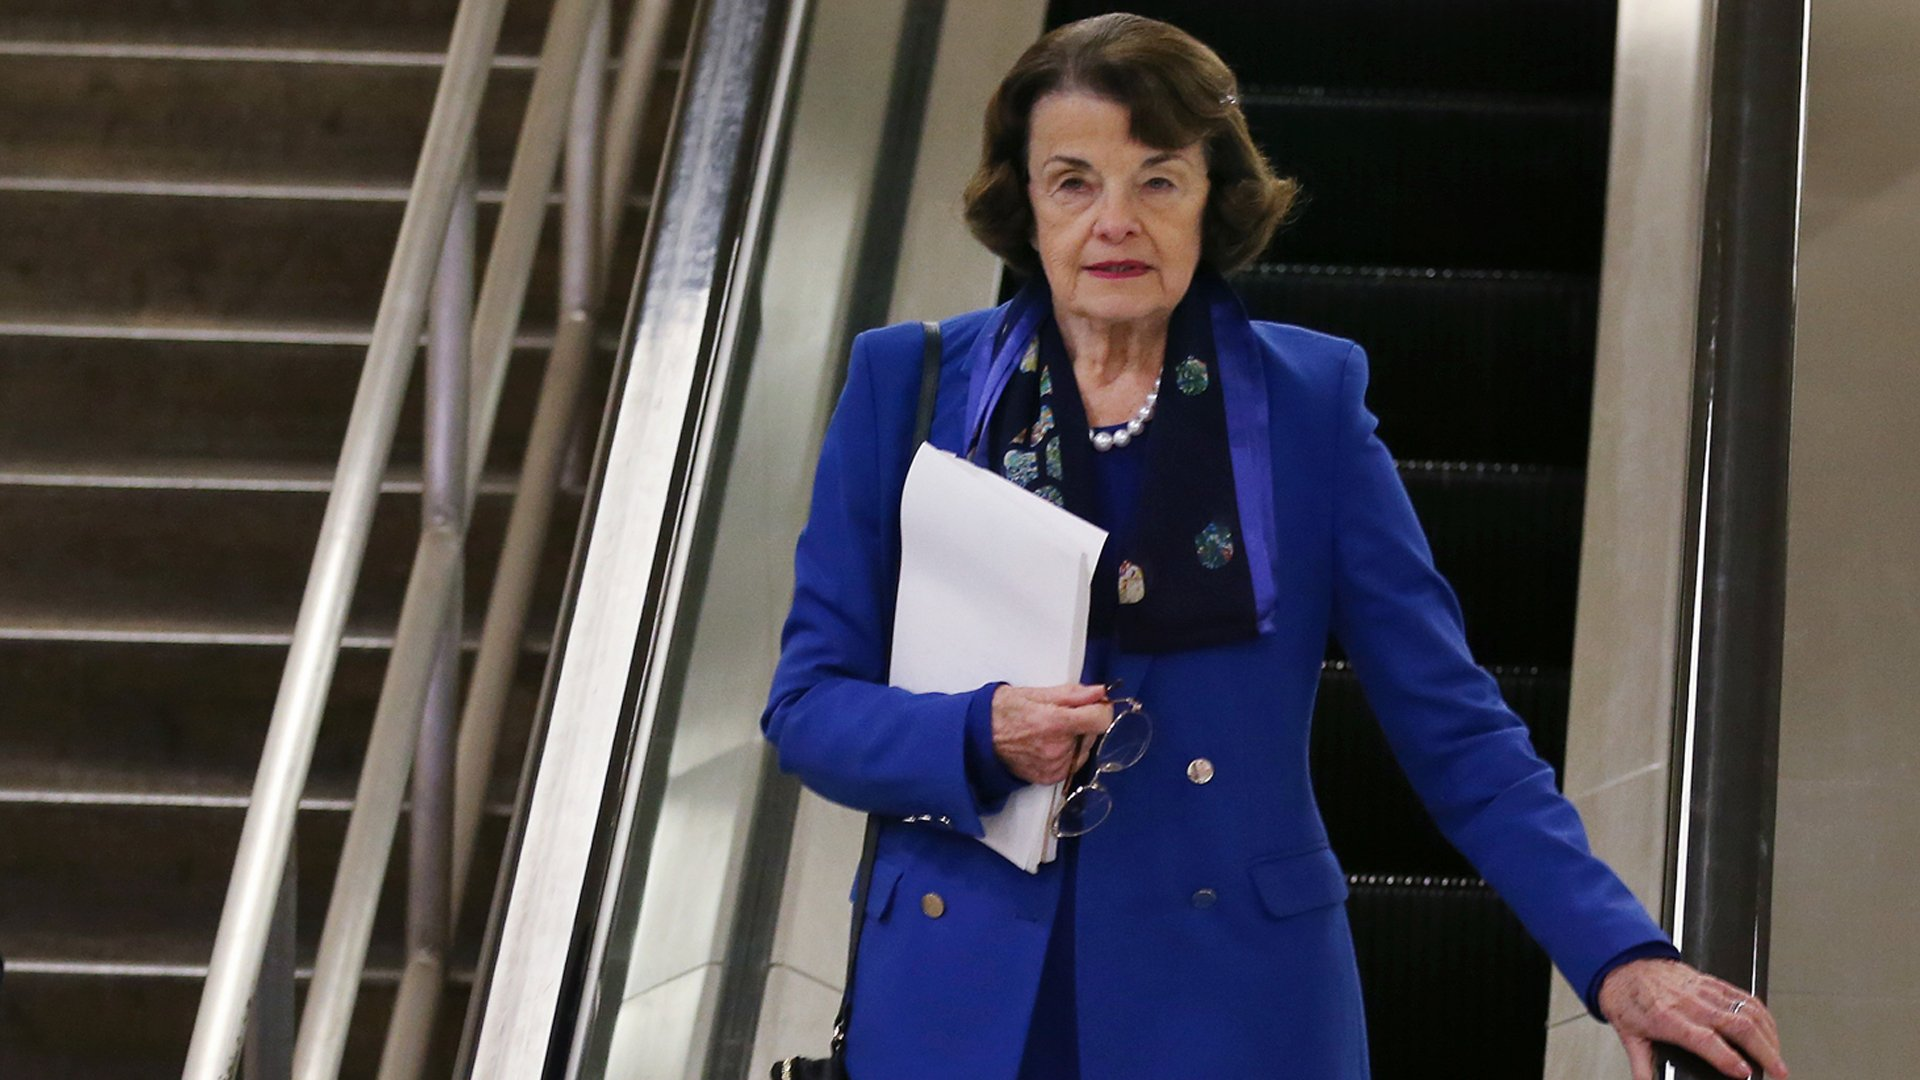 Sen. Dianne Feinstein descends an escalator at the U.S. Capitol after the Senate impeachment trial adjourned for the day on Jan. 28, 2020. (Credit: Mario Tama / Getty Images)